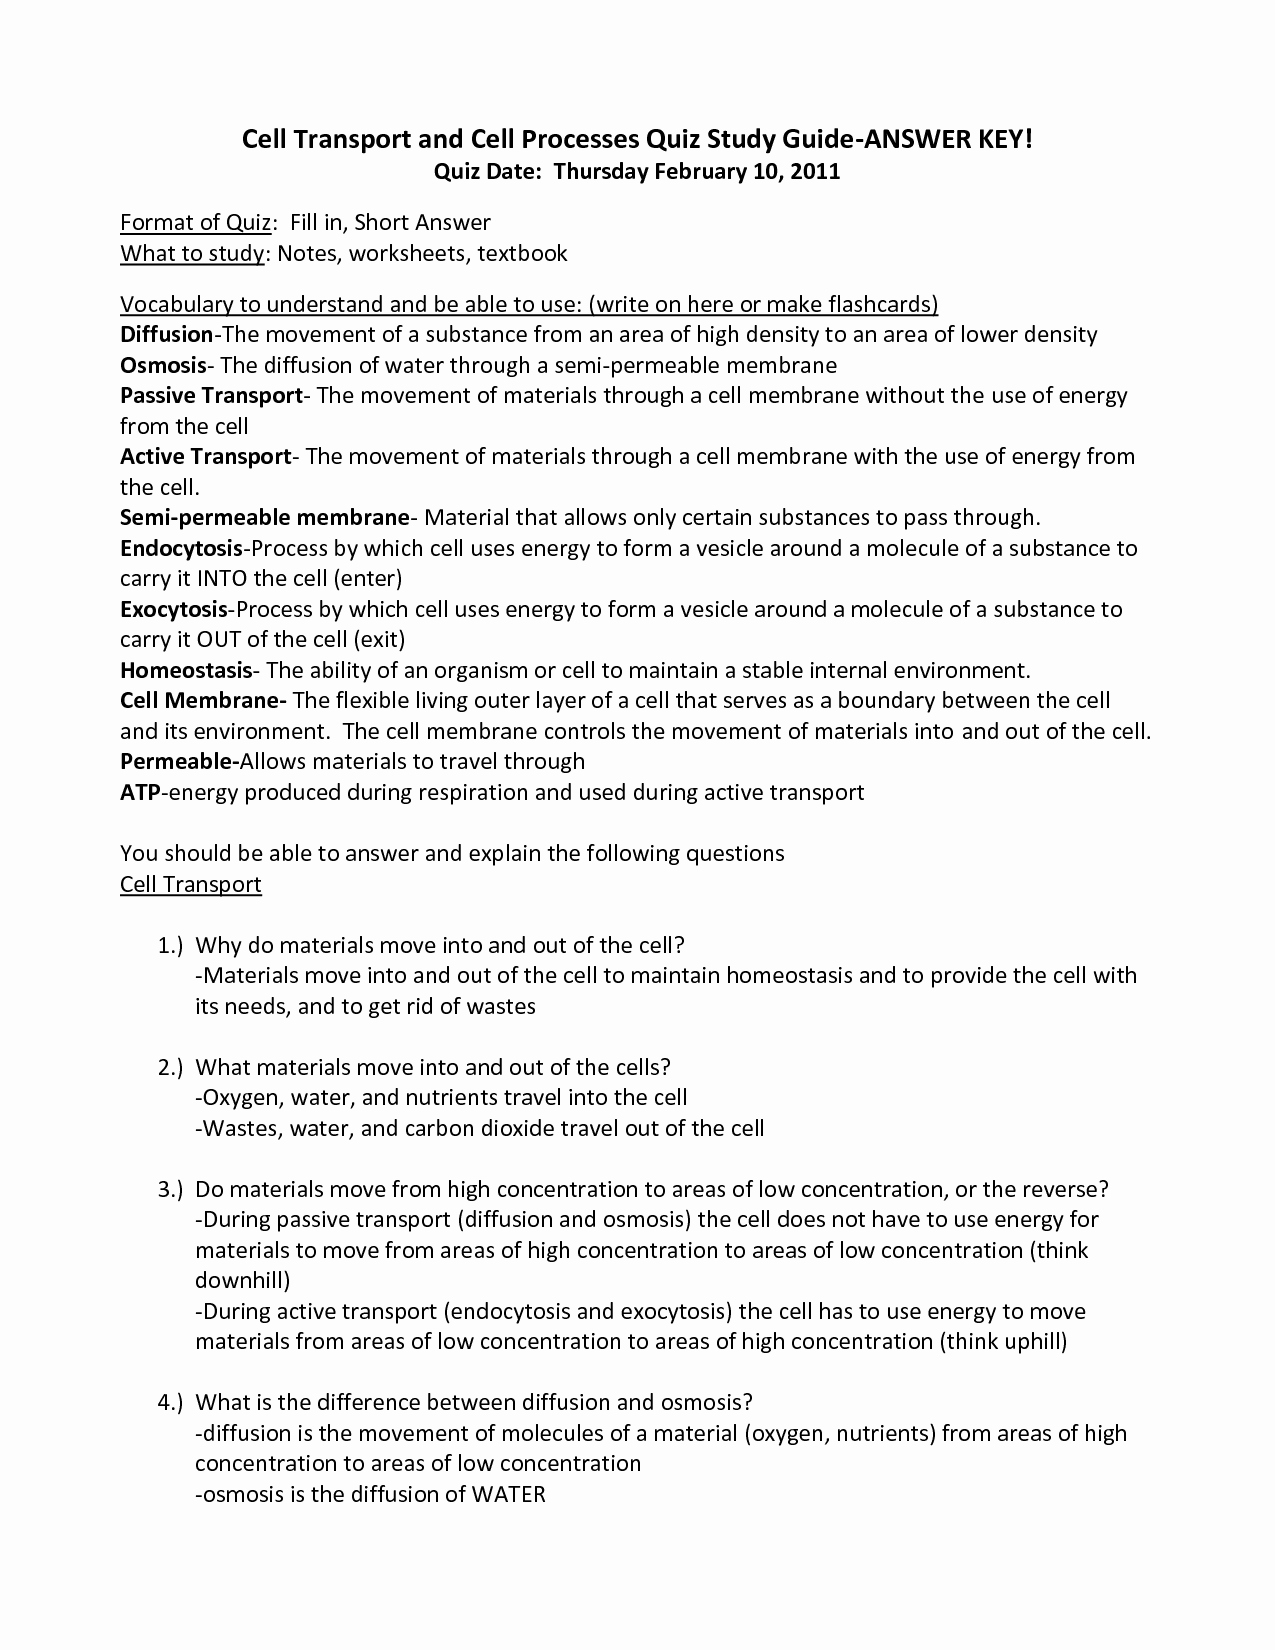 Cell Transport Worksheet Biology Answers Best Of 12 Best Of Cell Membrane Coloring Worksheet Answers